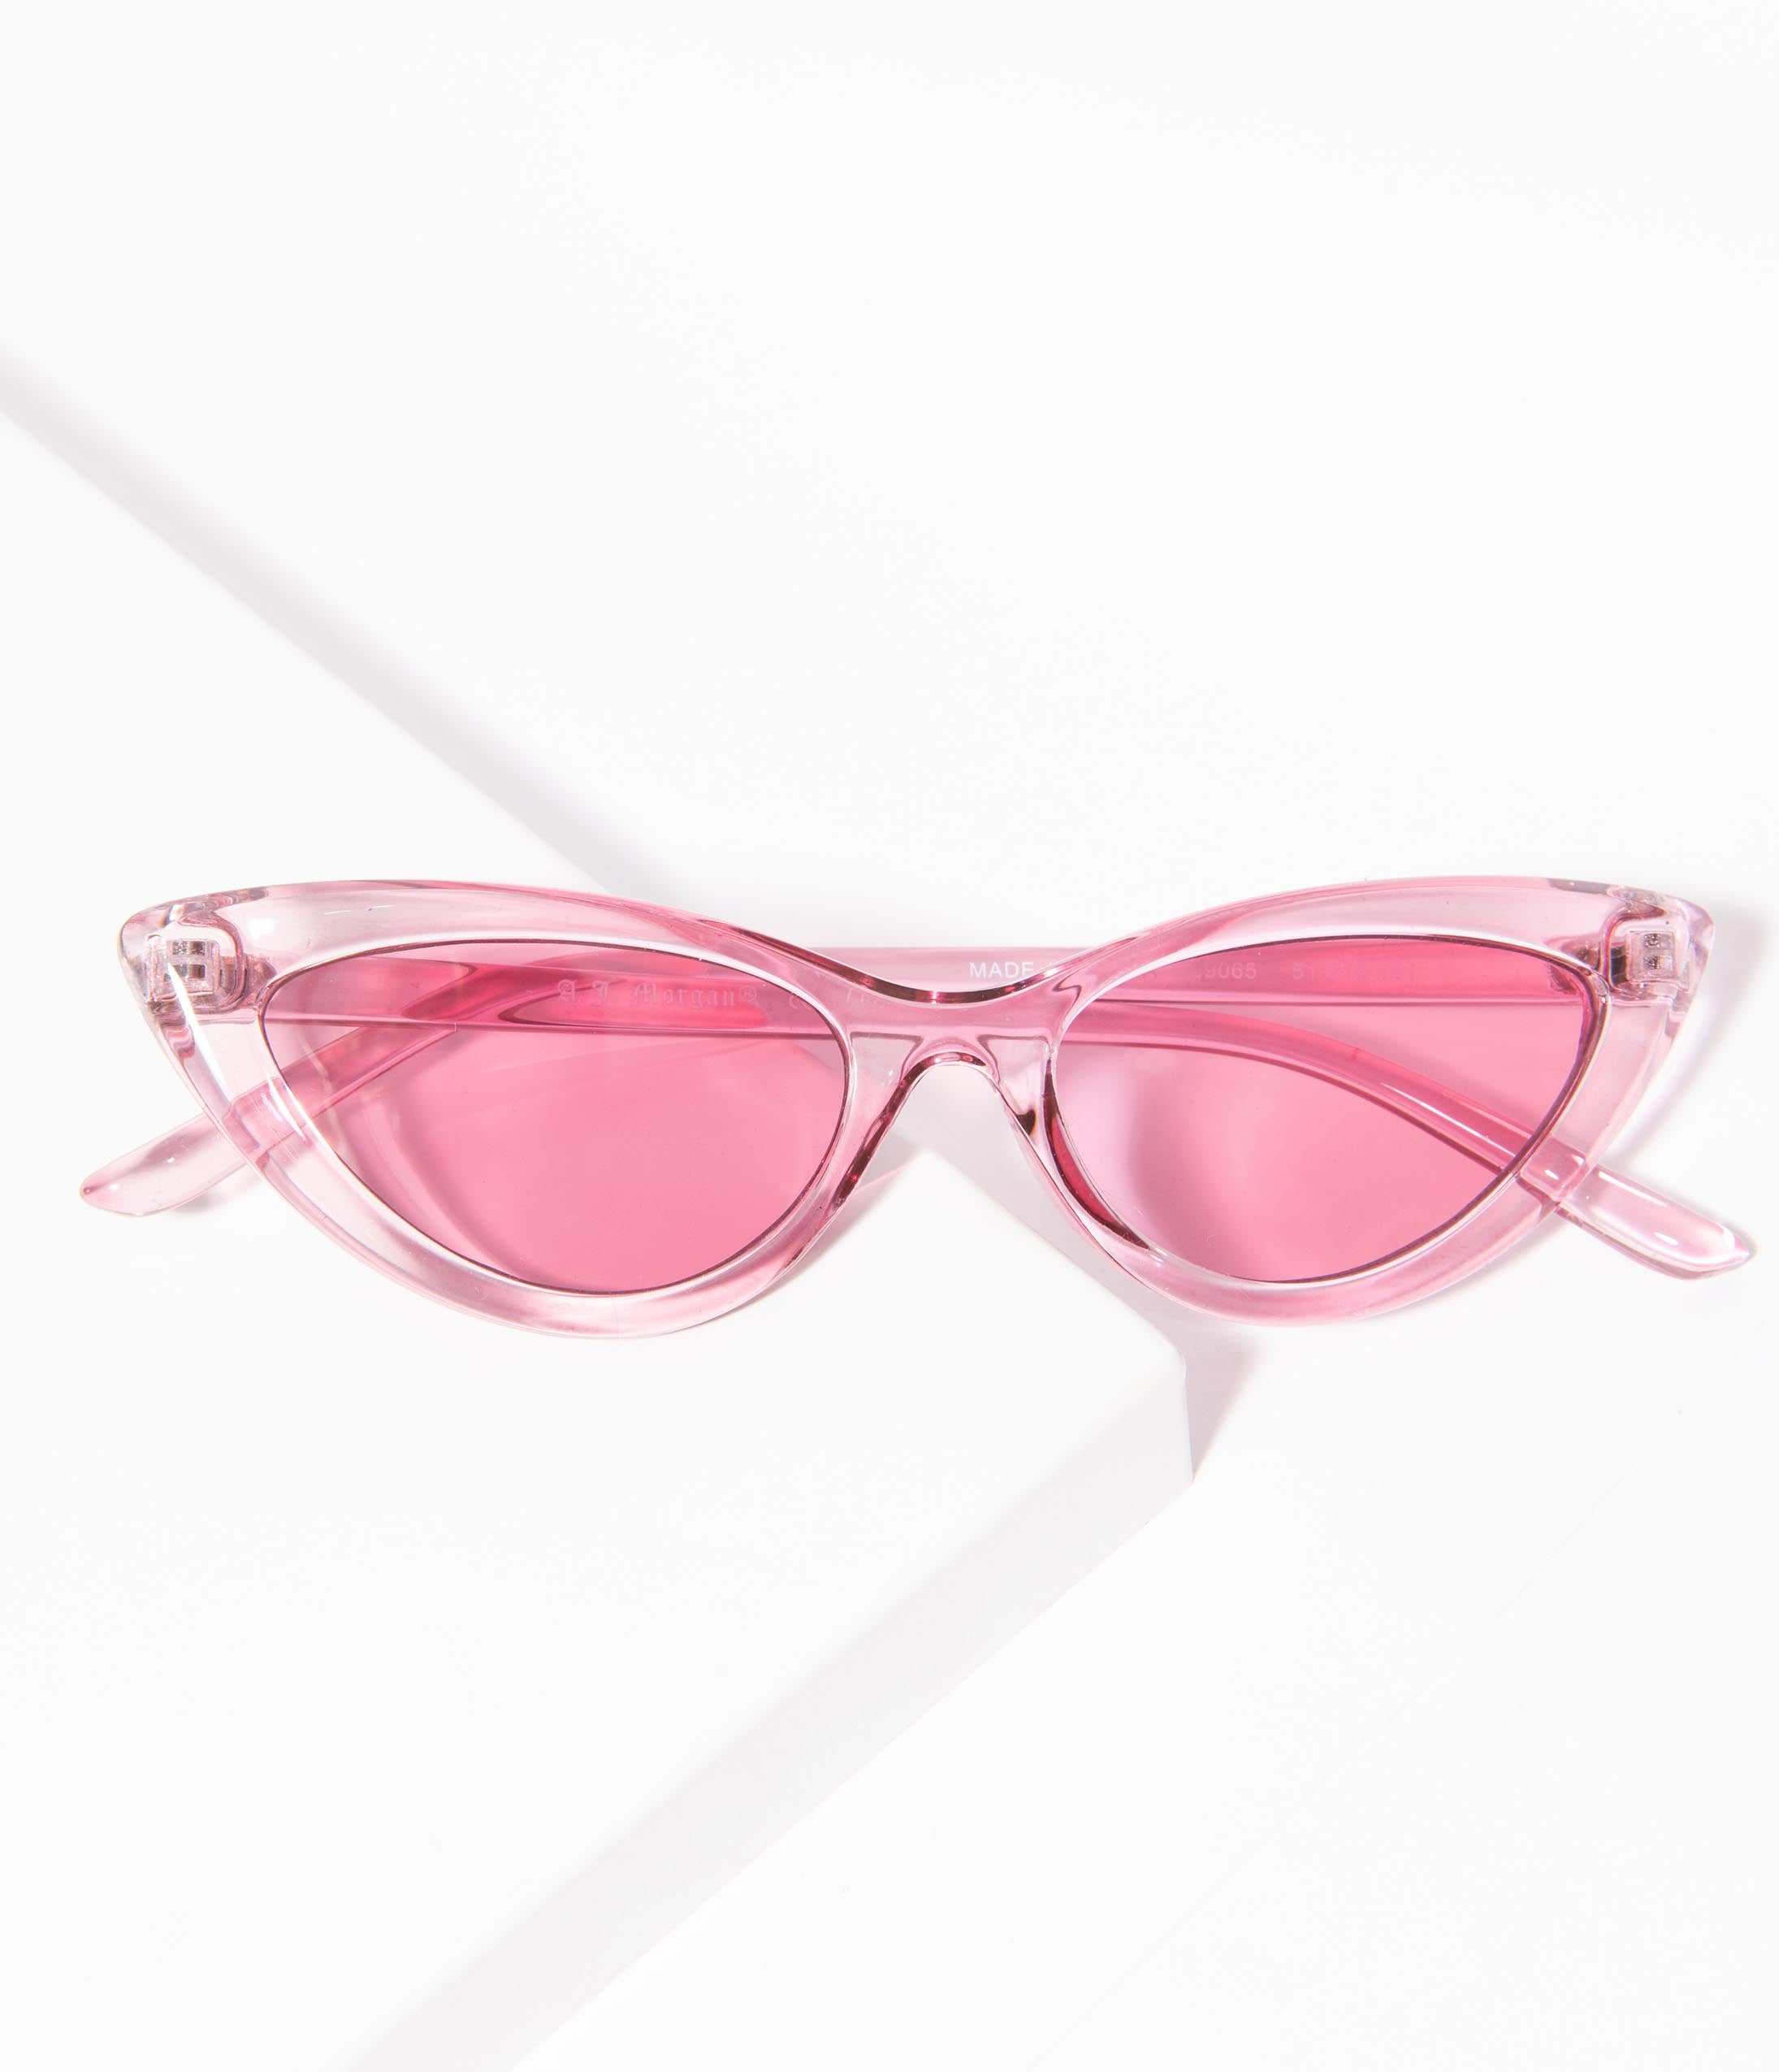 What Did Women Wear in the 1950s? 1950s Fashion Guide 1950S Style Pink Crystal 7 Year Itch Cat Eye Sunglasses $24.00 AT vintagedancer.com